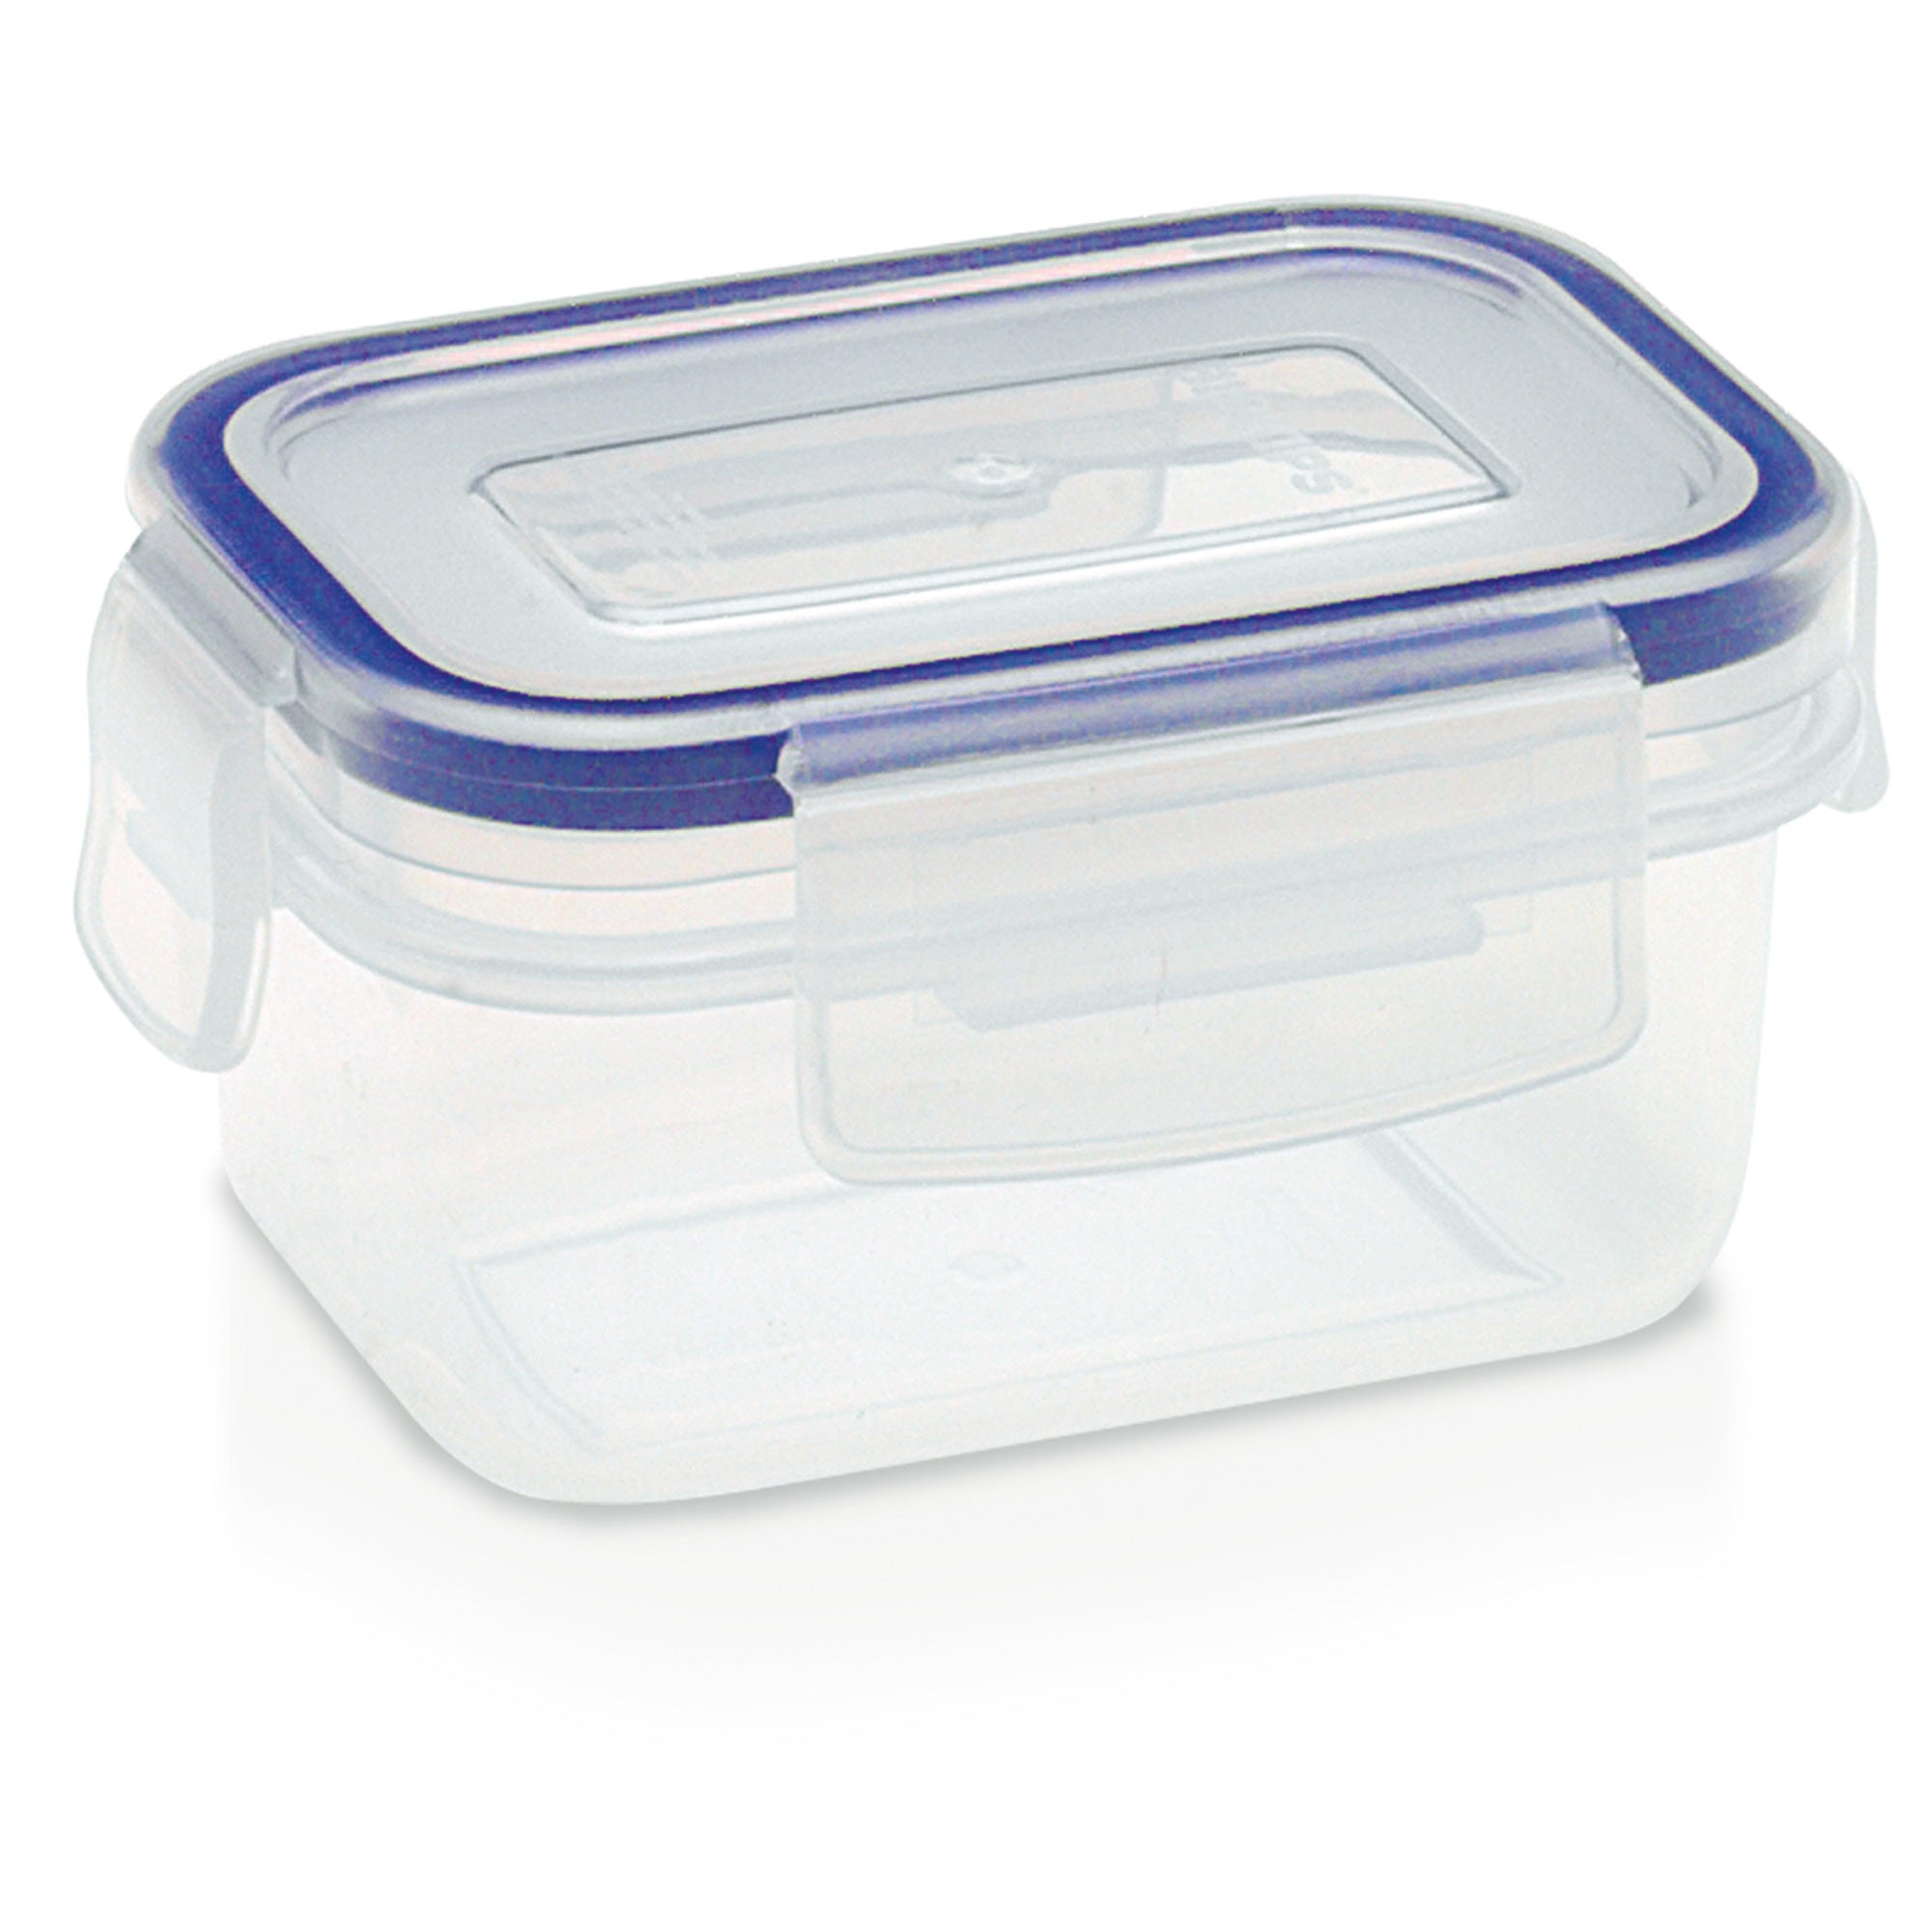 Clip & Close Rectangular Food Container